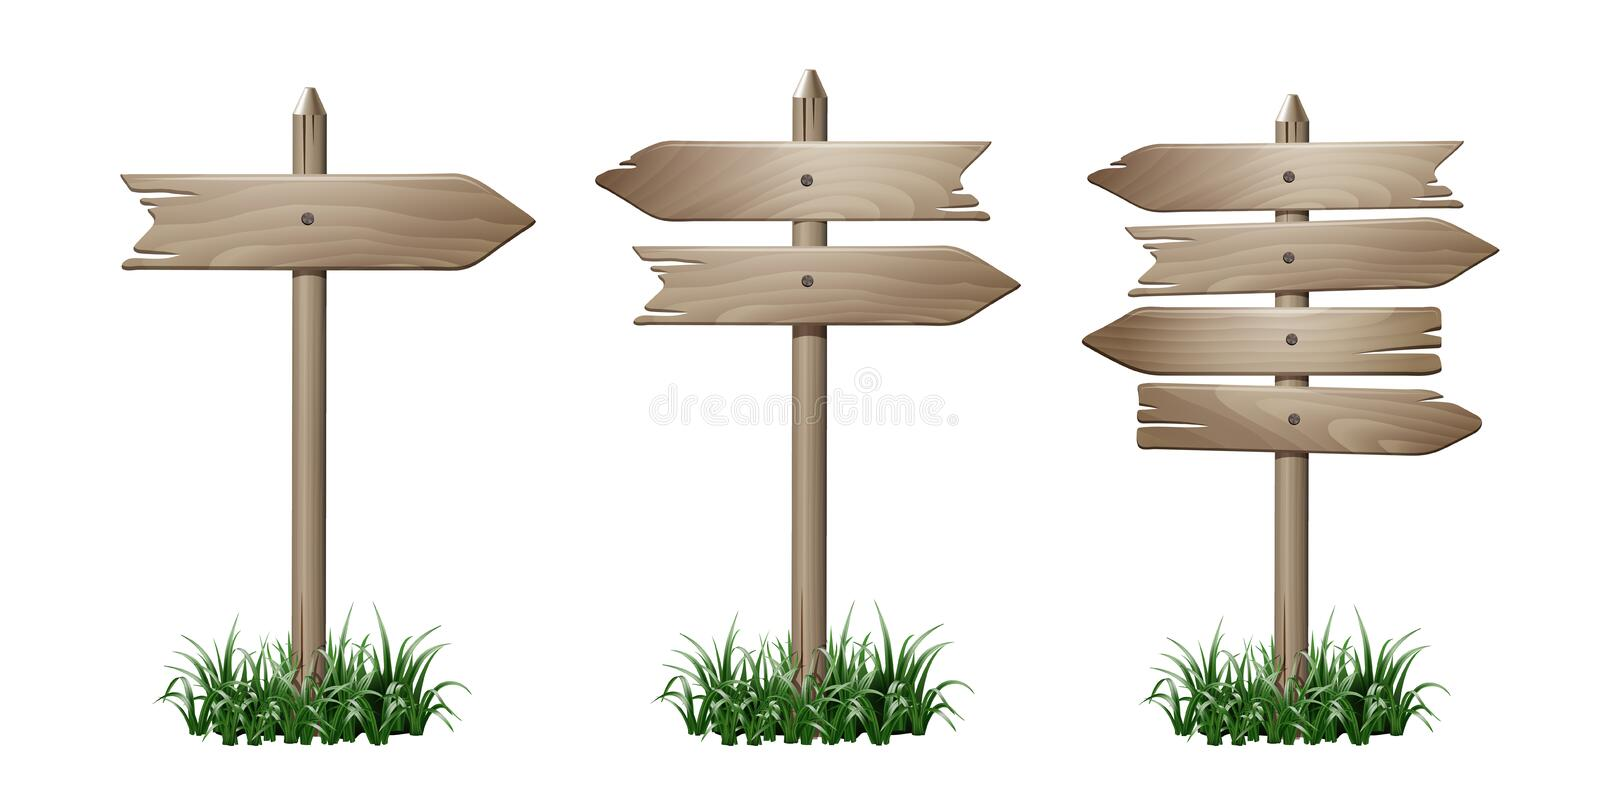 Set of wooden signpost royalty free illustration